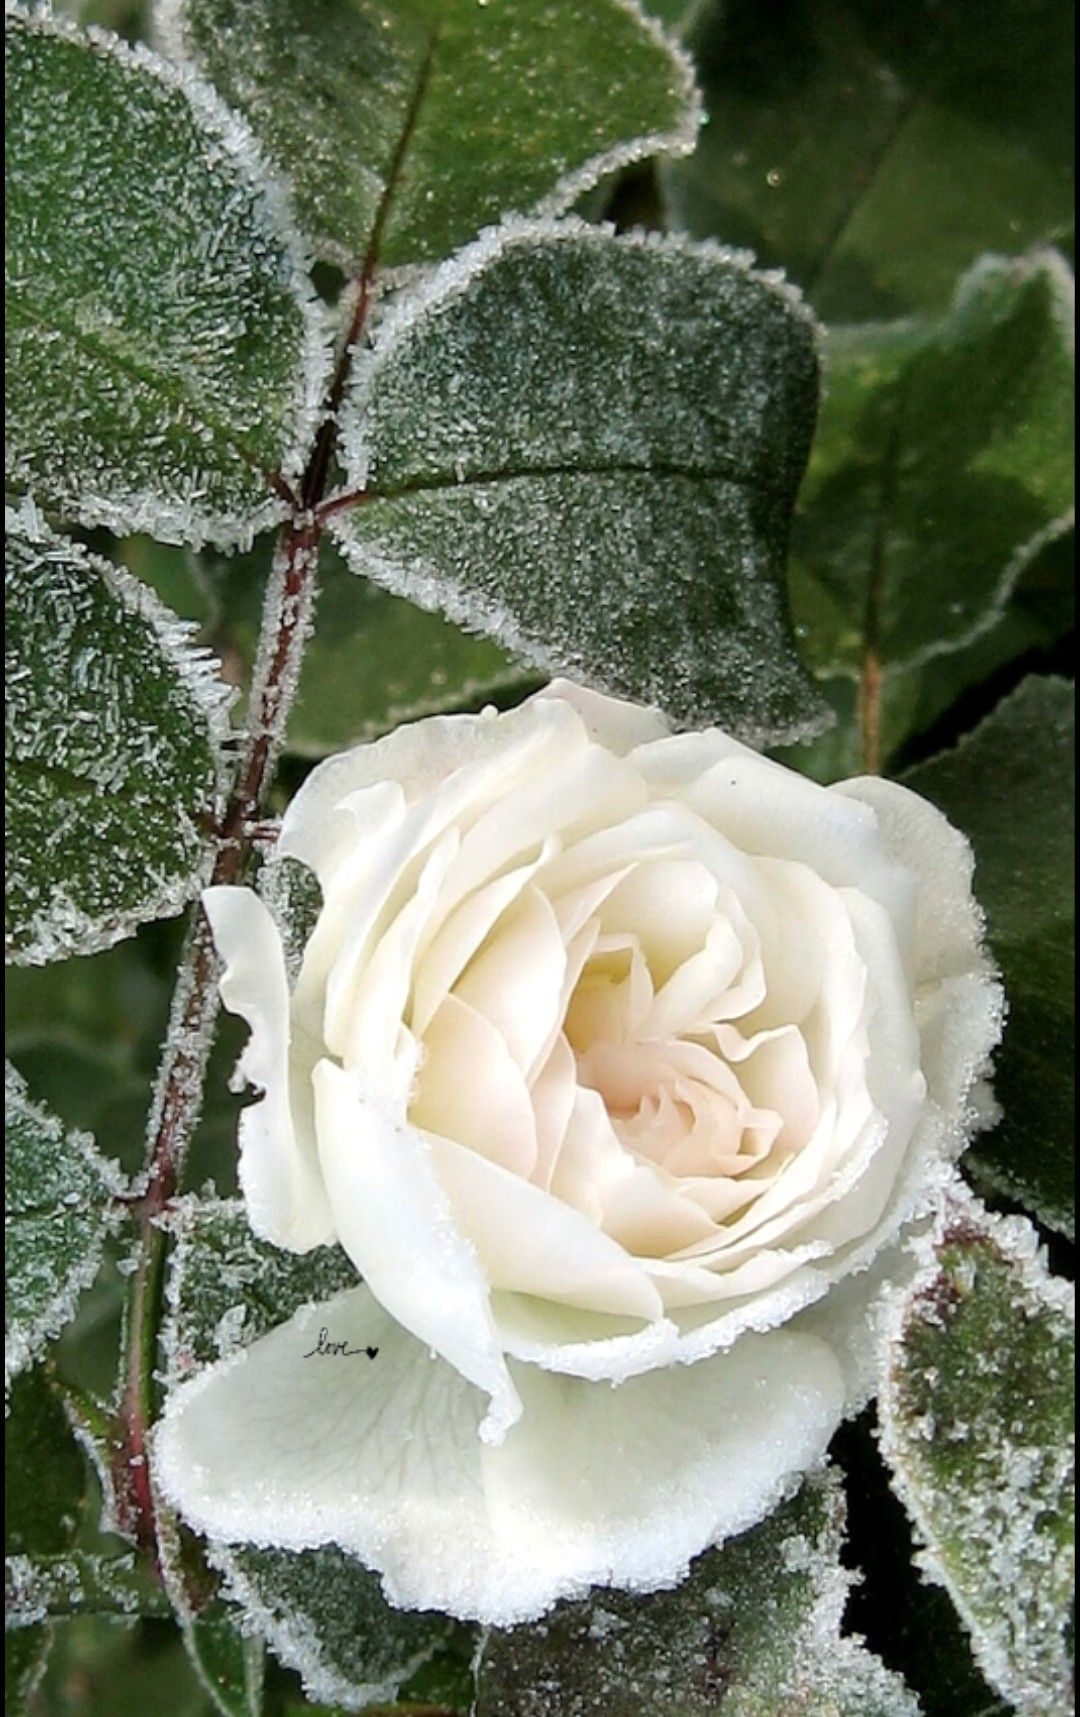 Pin by hindi ld on lovely roses pinterest rose flowers and beautiful flowers rose izmirmasajfo